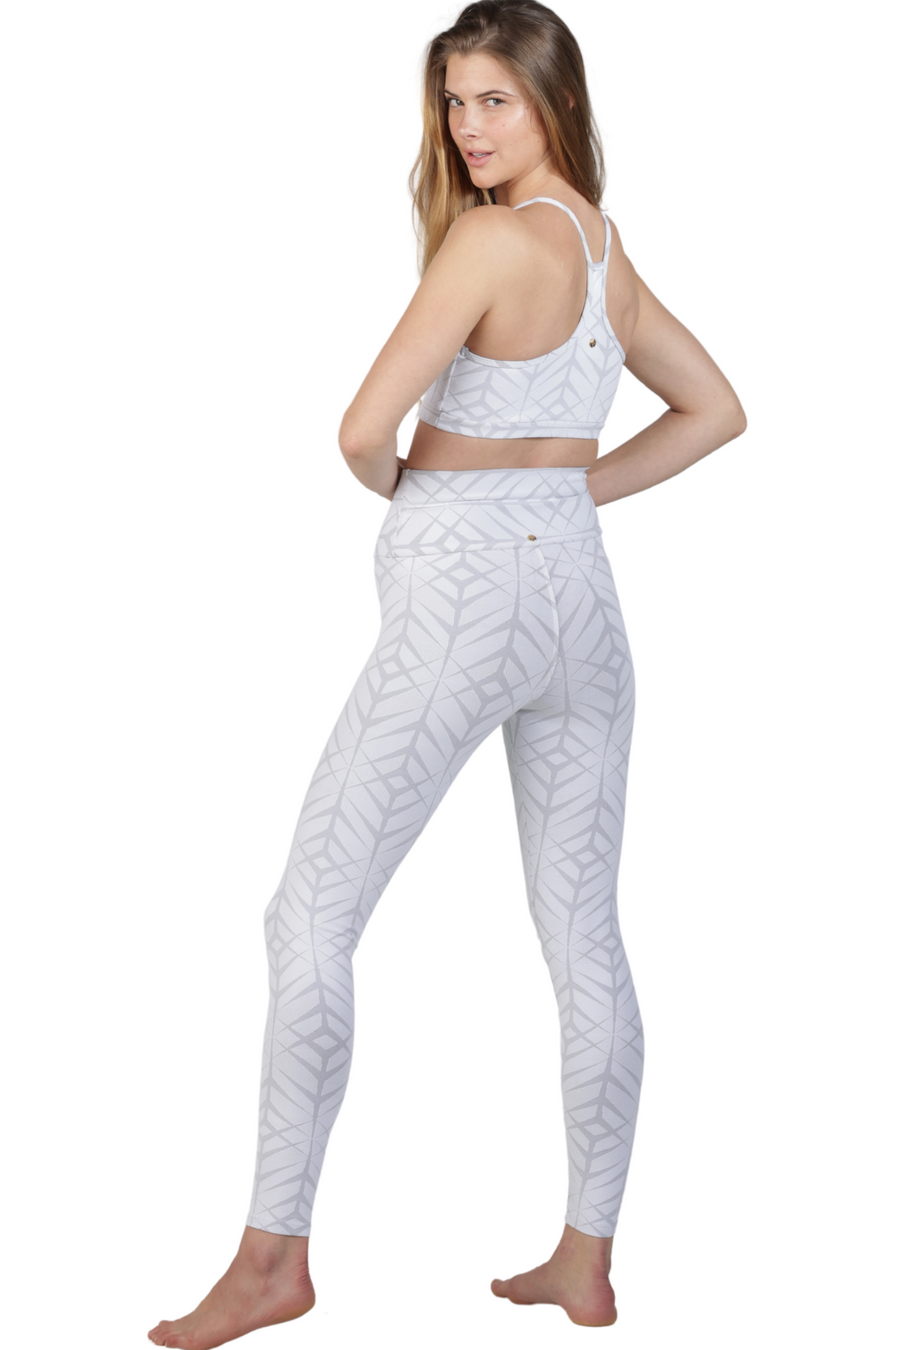 white jacquard high waist long legging activewear